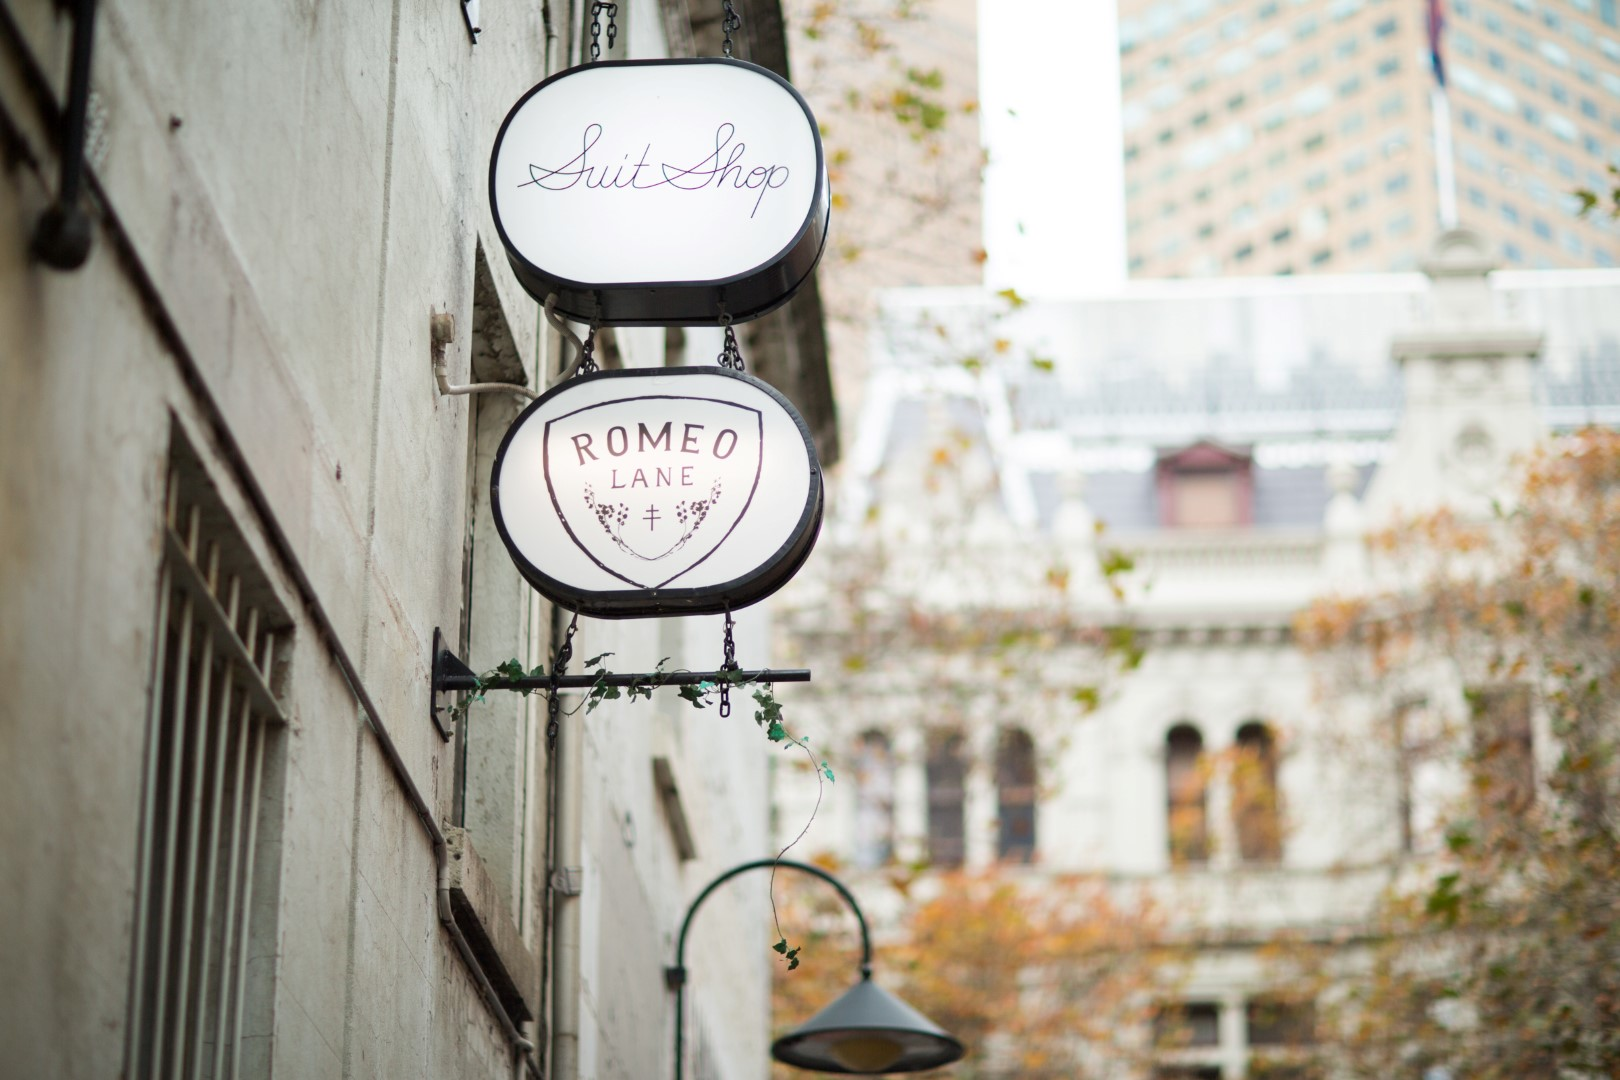 melbourne laneway cafes and bars guide